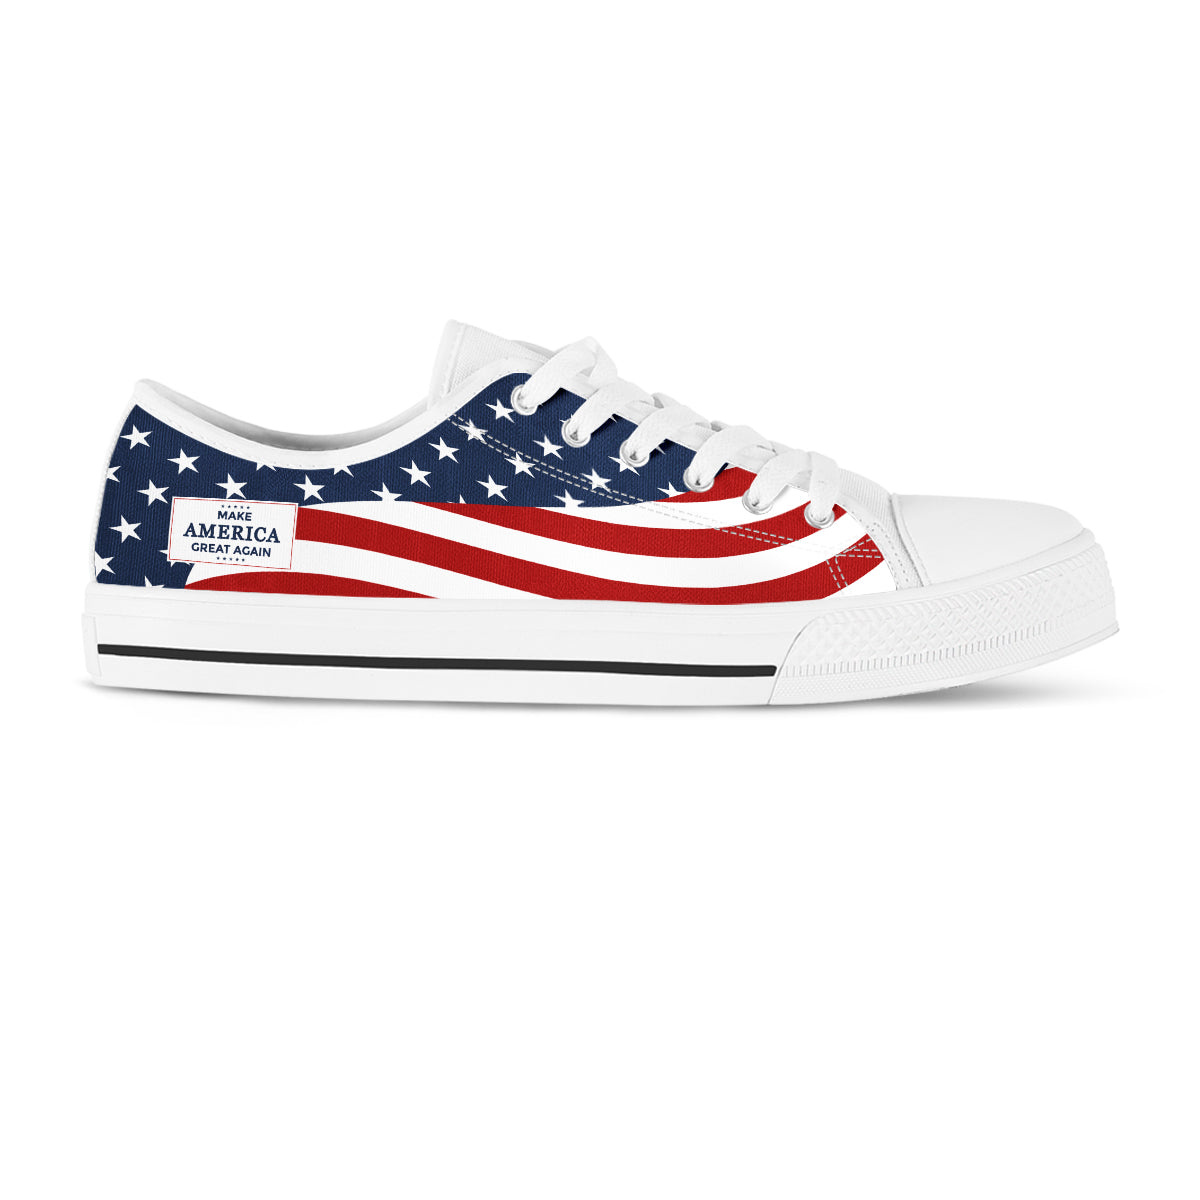 MAGA Flow - Women's Low Tops